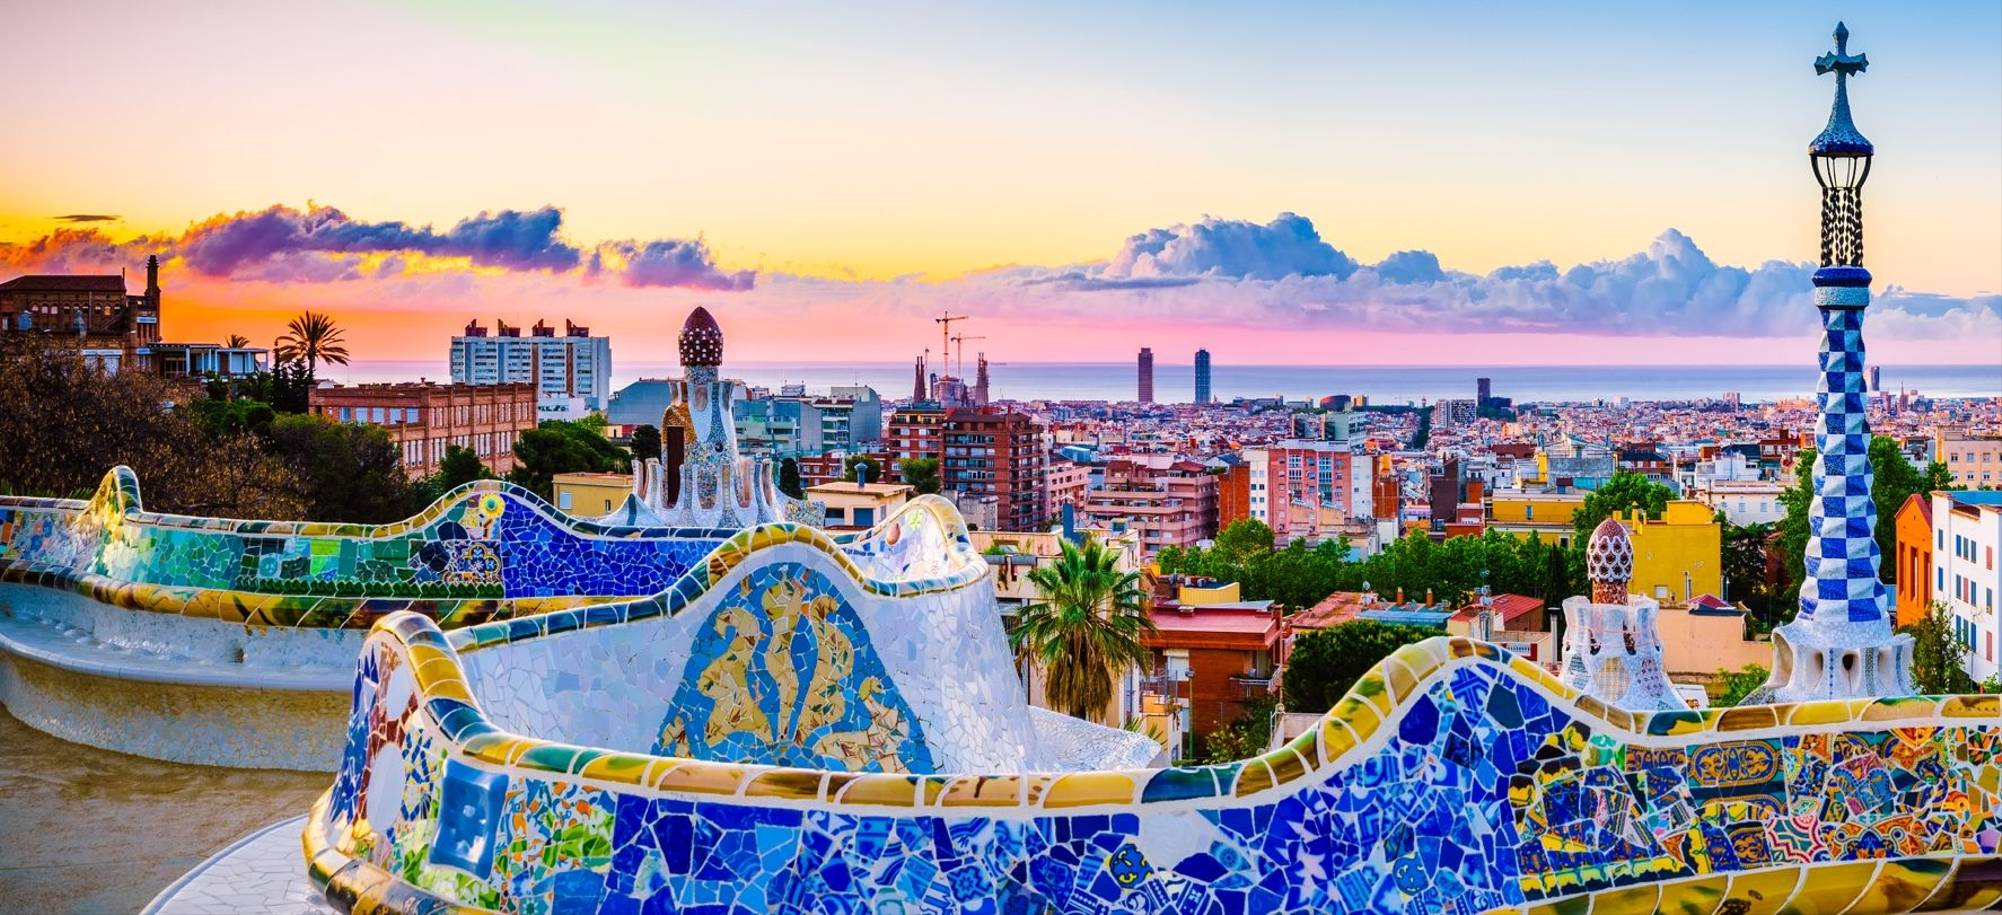 Itinerary Desktop Day 7 - Barcelona at sunrise viewed from park Guell, Spain.jpg